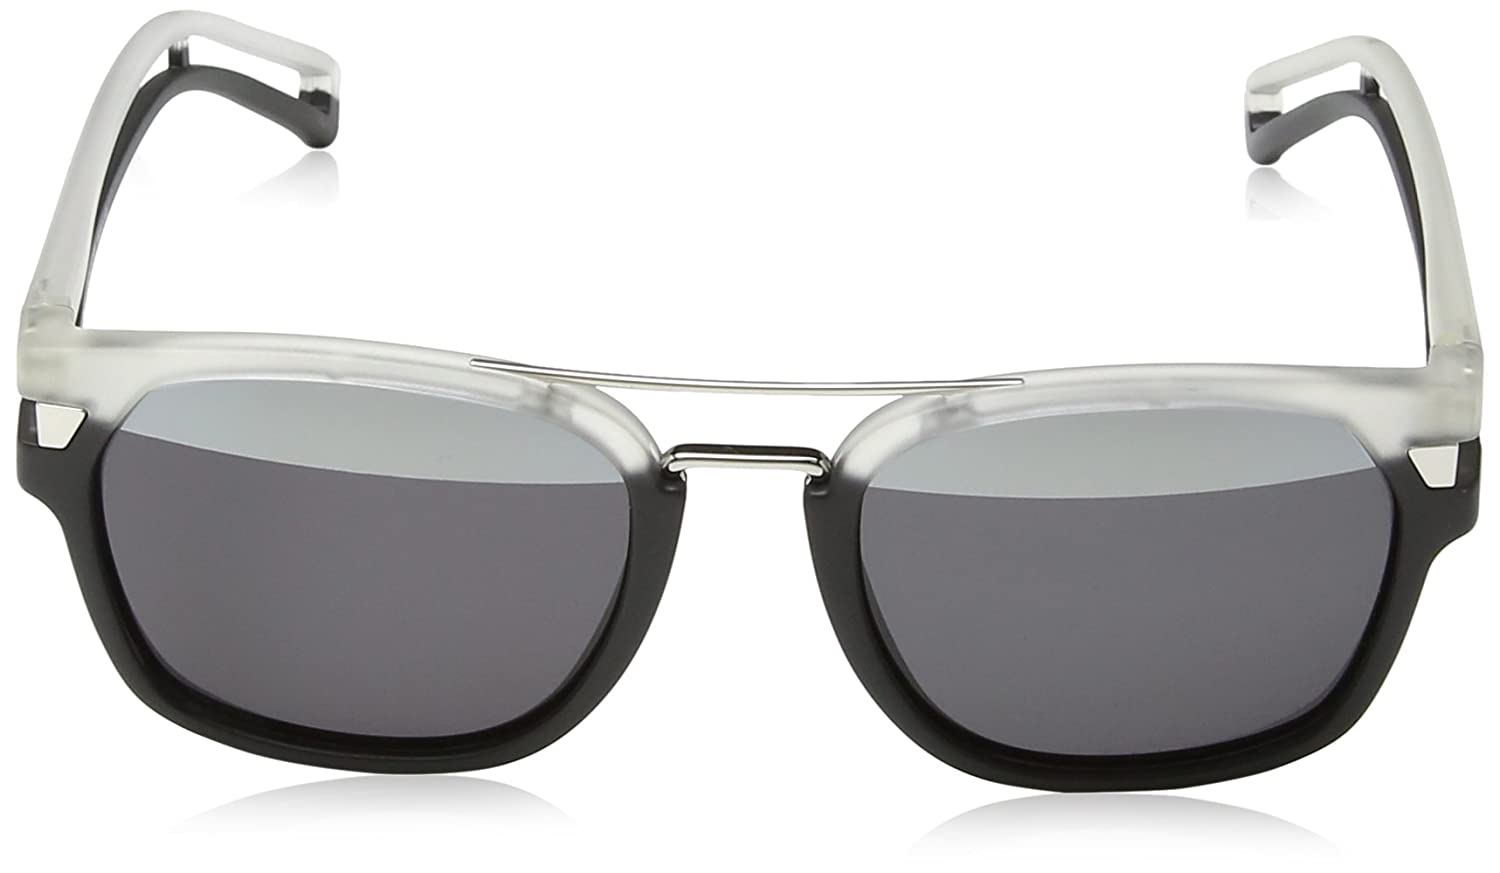 d05d762d982 Police S1948 Neymar Jr 1 Wayfarer Sunglasses  Amazon.co.uk  Clothing